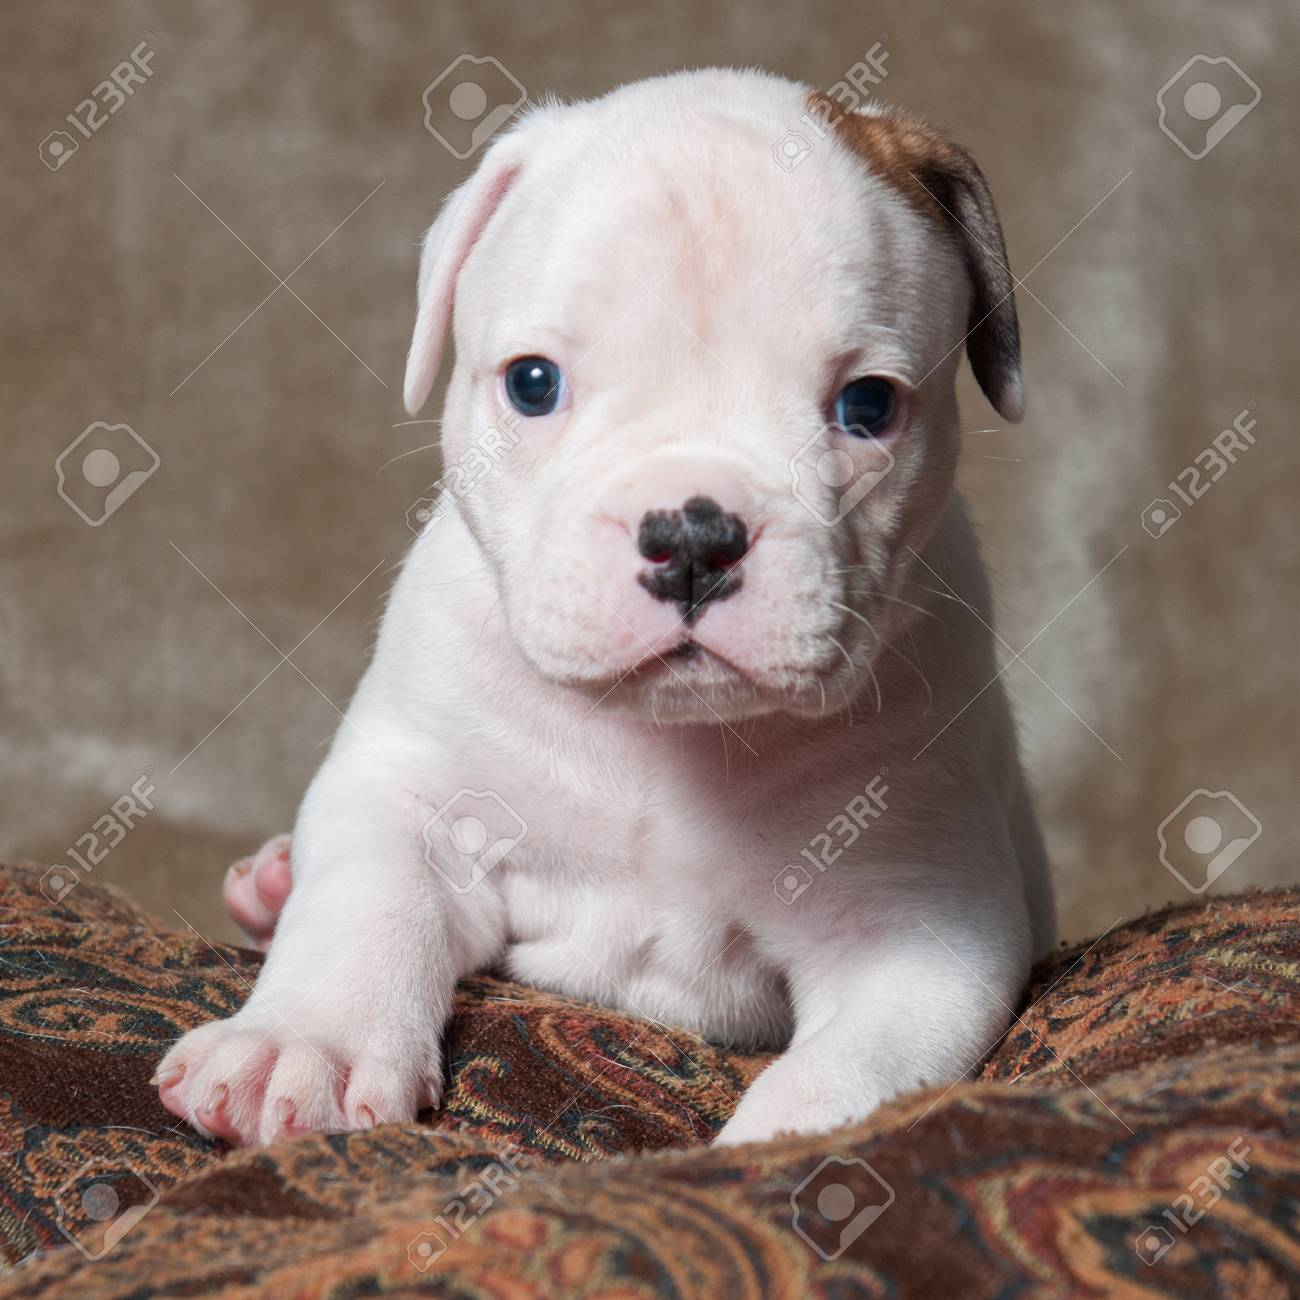 Funny Small Red White Color American Bulldog Puppy On Light